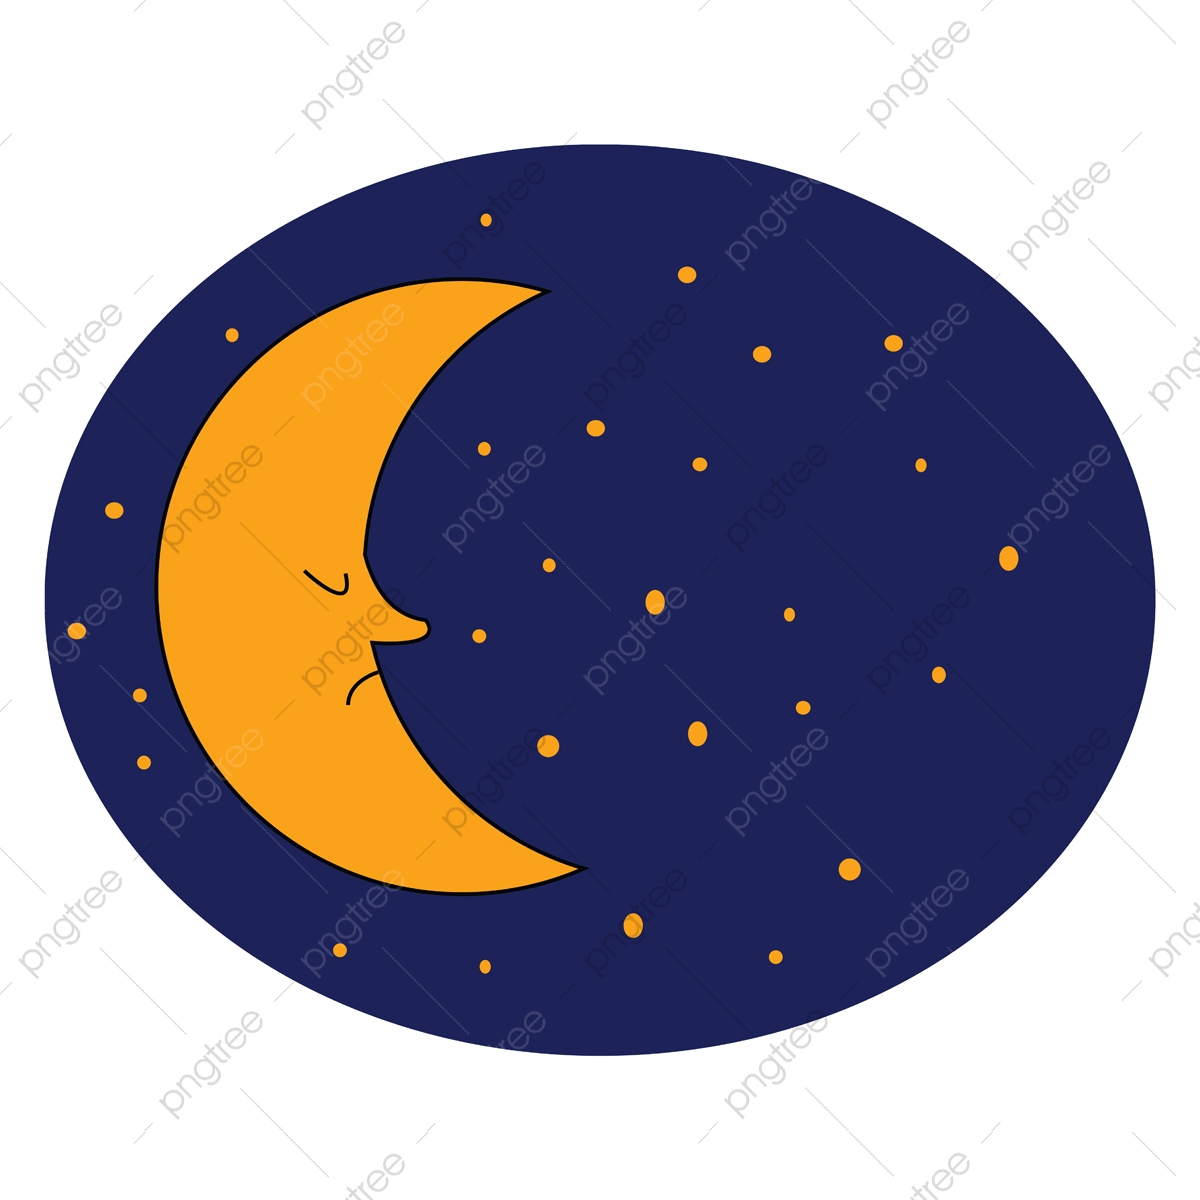 half crescent moon vector or color illustration half crescent moon png and vector with transparent background for free download https pngtree com freepng half crescent moon vector or color illustration 5289133 html